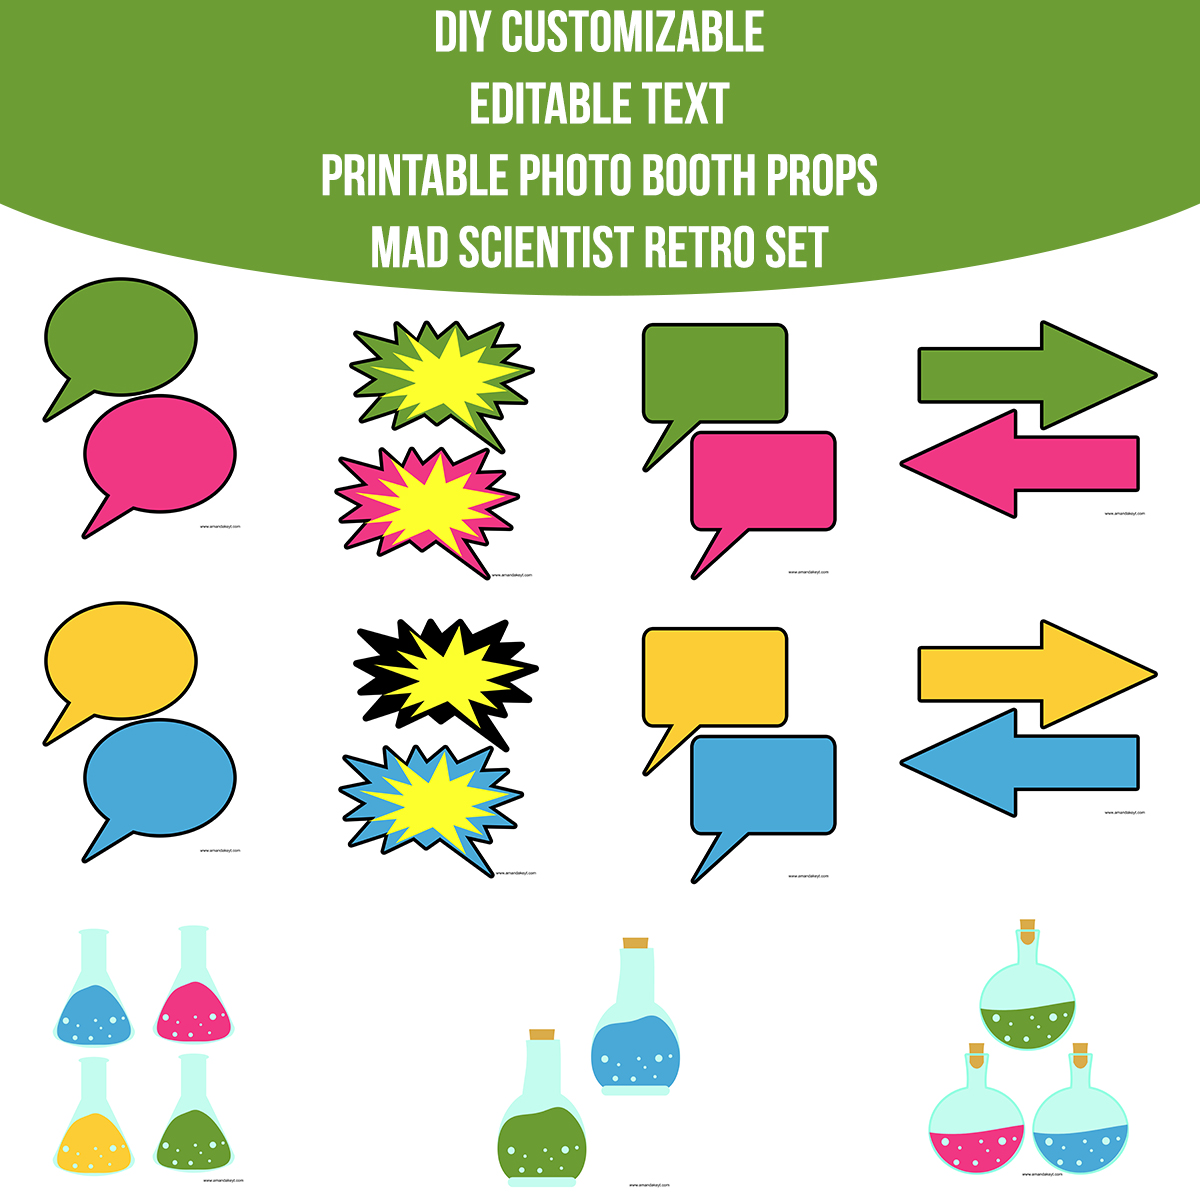 graphic regarding Printable Mad Science Sign known as Instantaneous Down load Nuts Scientist Retro Do-it-yourself Customizable Editable Terms Prop Established Amanda Keyt Printable Patterns